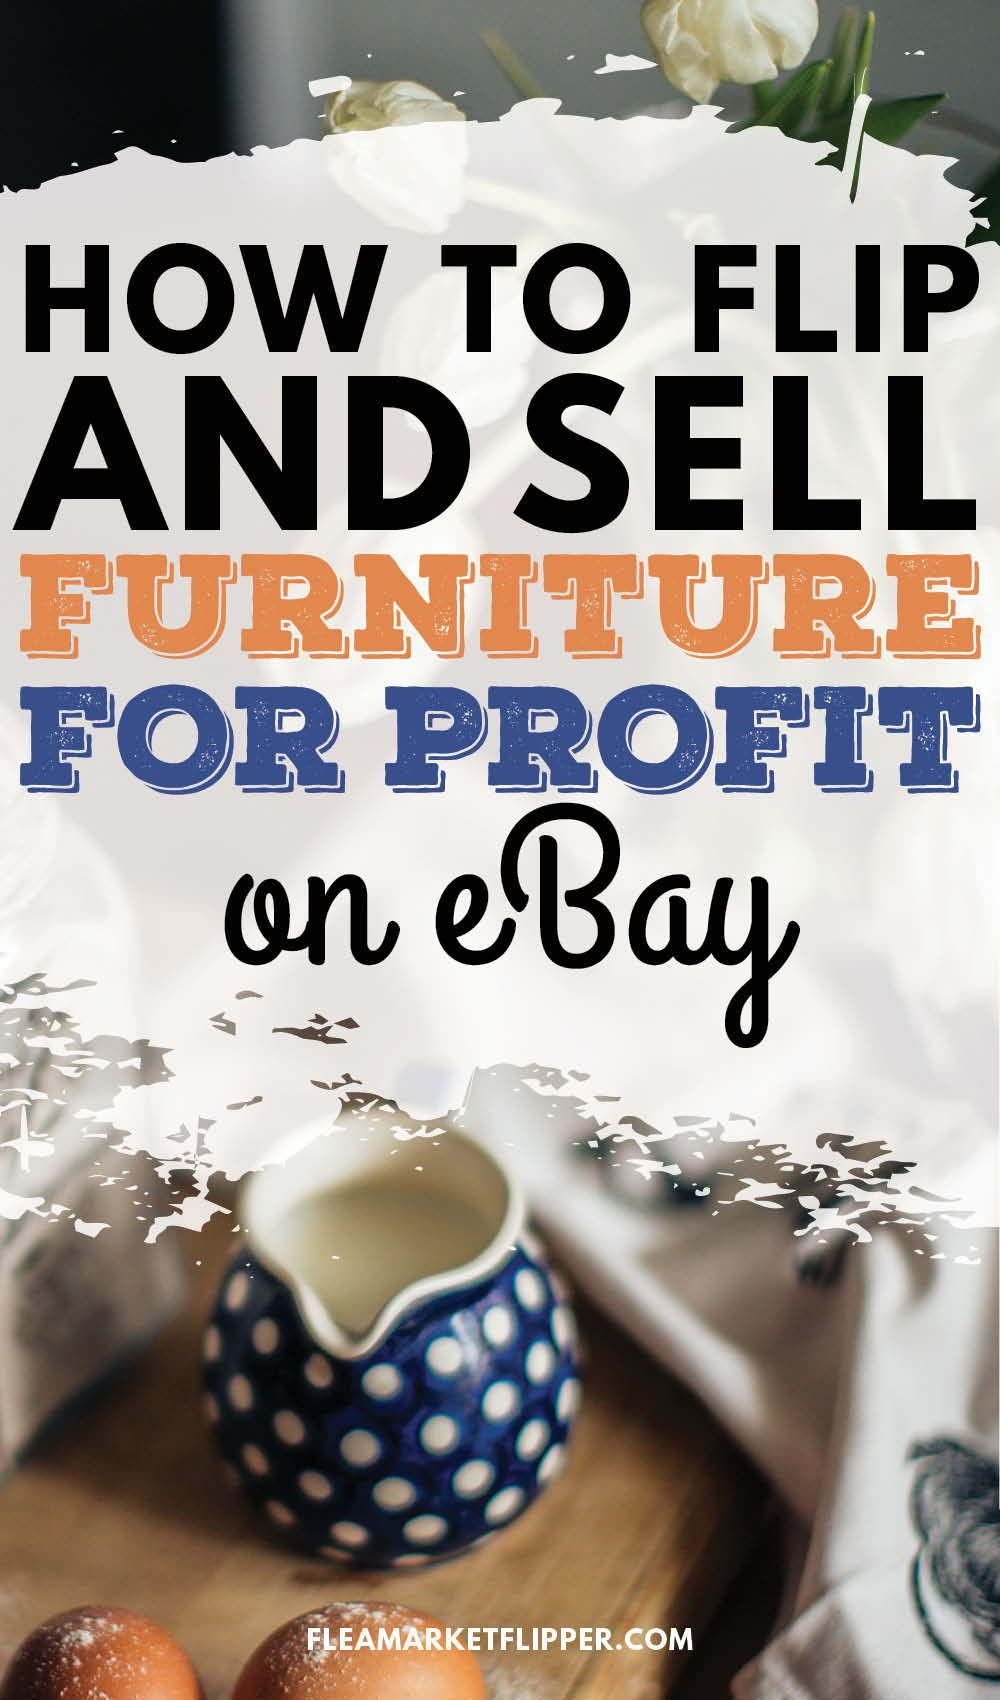 How to double your furniture flipping profits by mastering